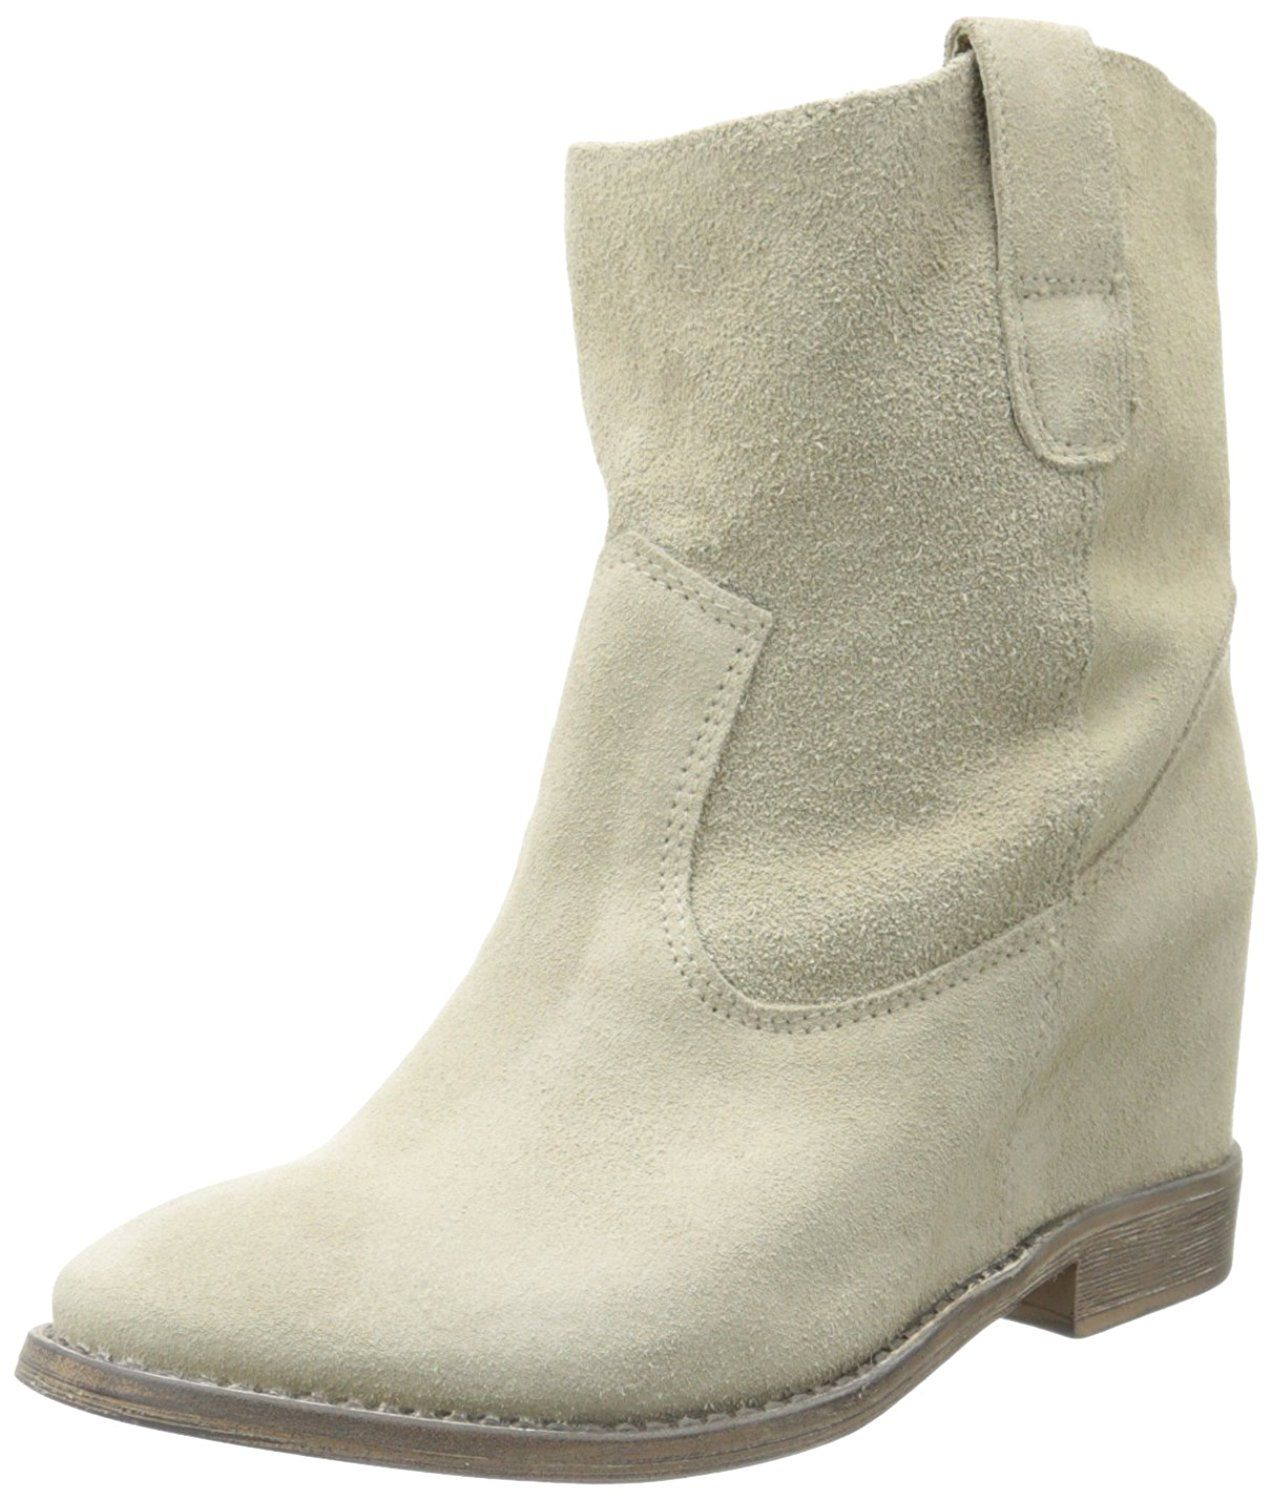 This Quickly Women's gt; Product Boot Special gt; Sandpiper gt; Otbt View a1SPBH